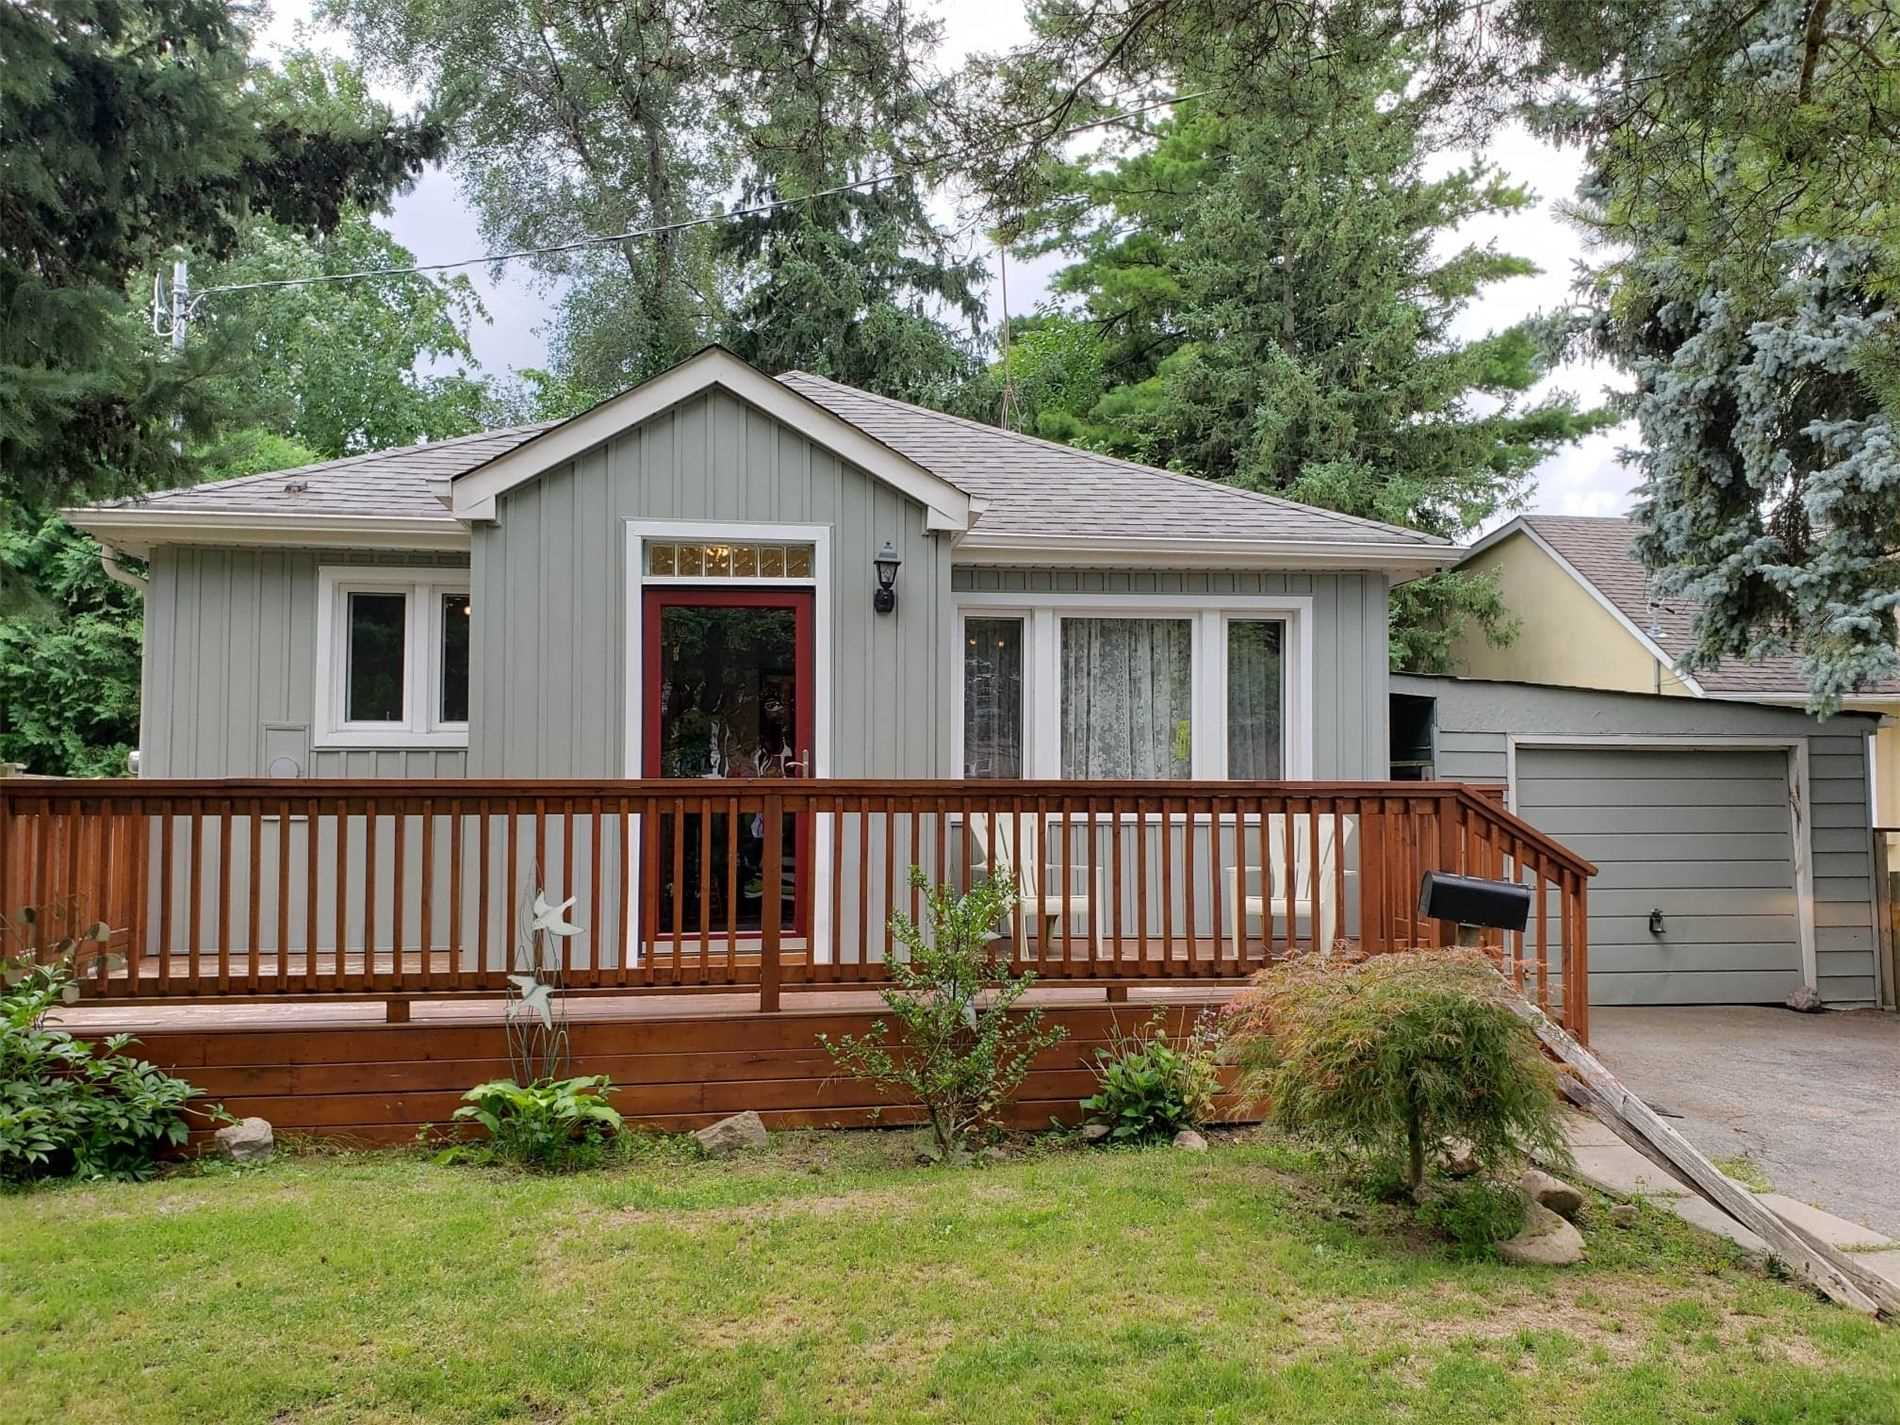 130 Rumble Ave, Richmond Hill, Ontario L4C4G1, 2 Bedrooms Bedrooms, 5 Rooms Rooms,1 BathroomBathrooms,Detached,For Sale,Rumble,N4869108